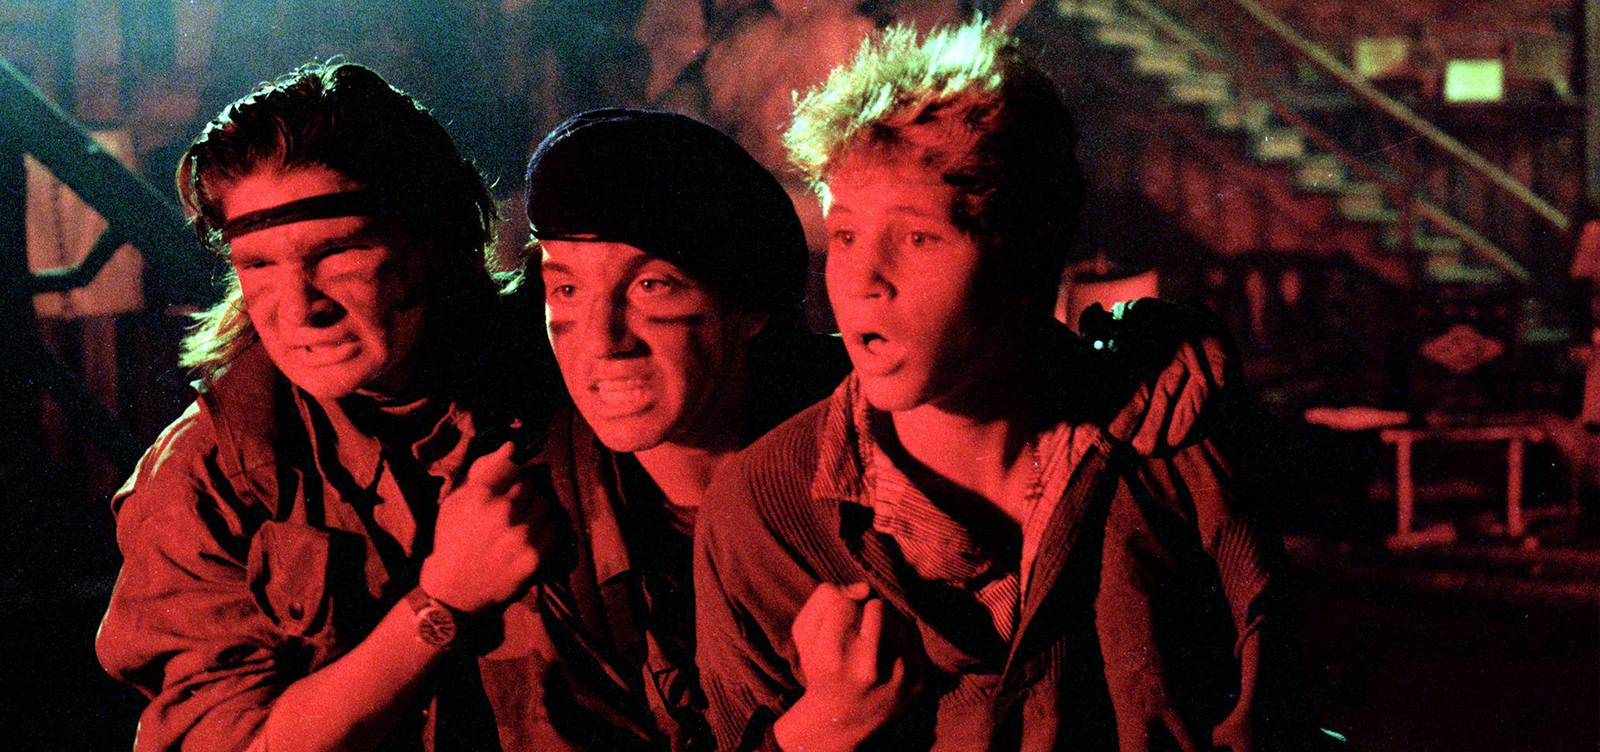 Lost_Boys_Review_Images_V04